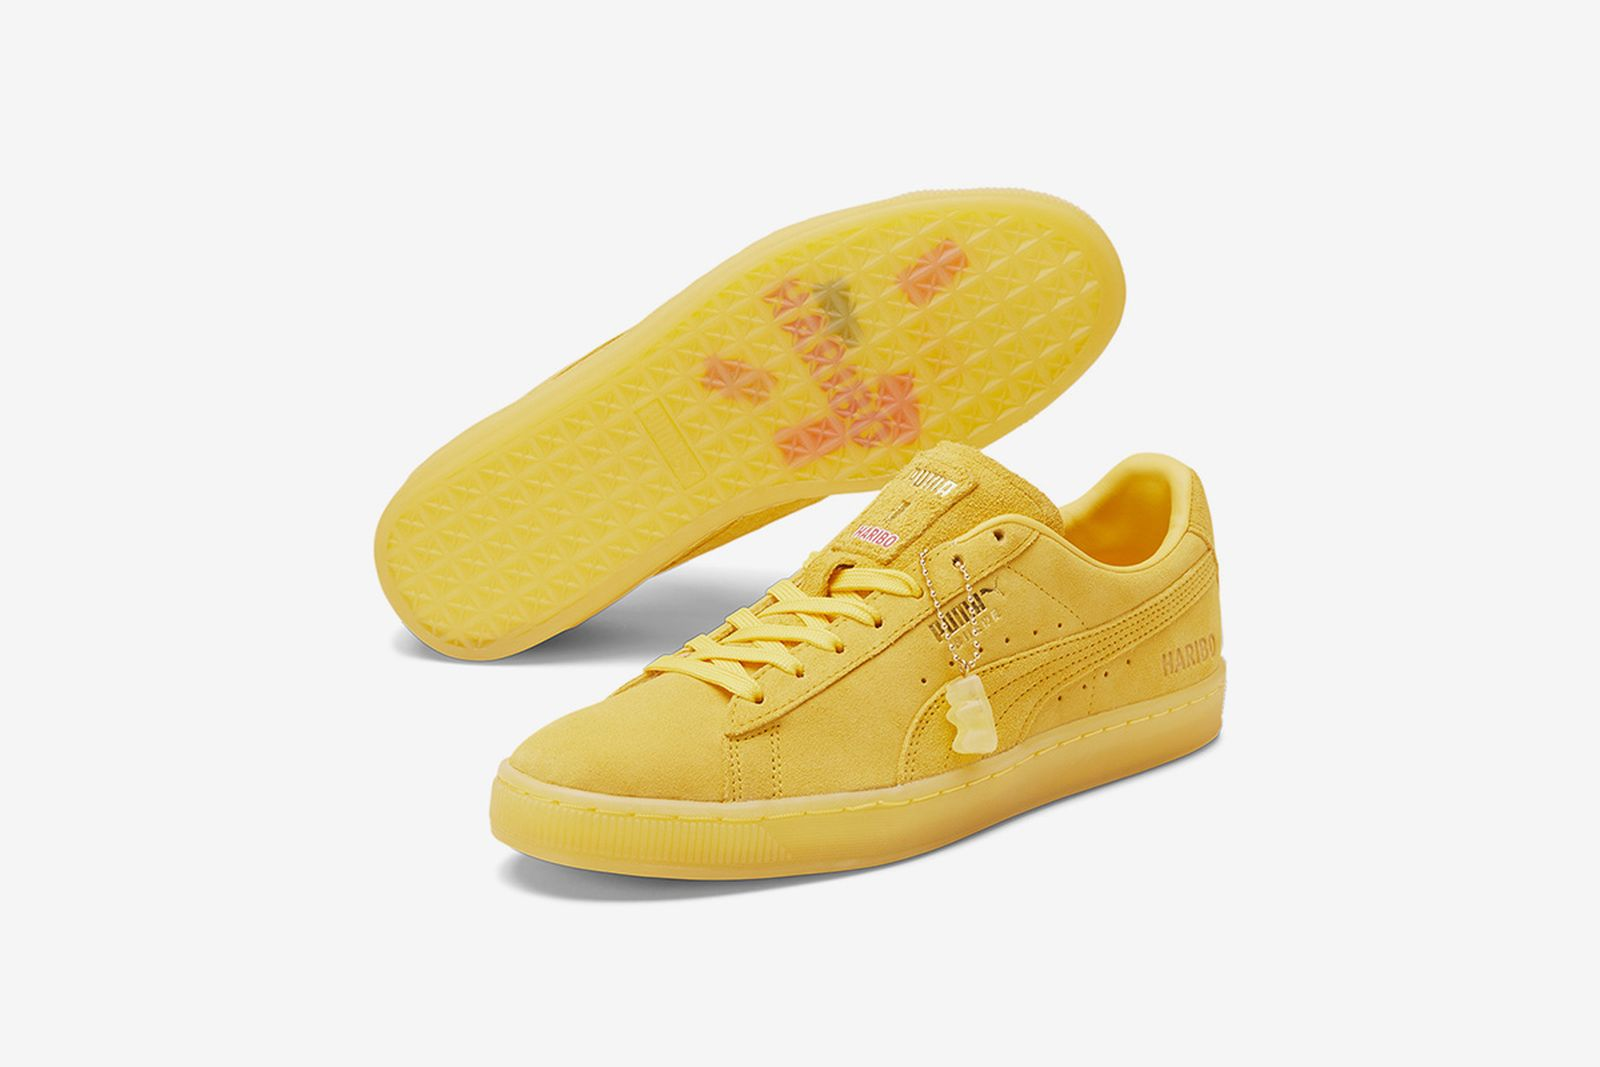 Haribo x PUMA Suede: Detailed Look & Official Release Info